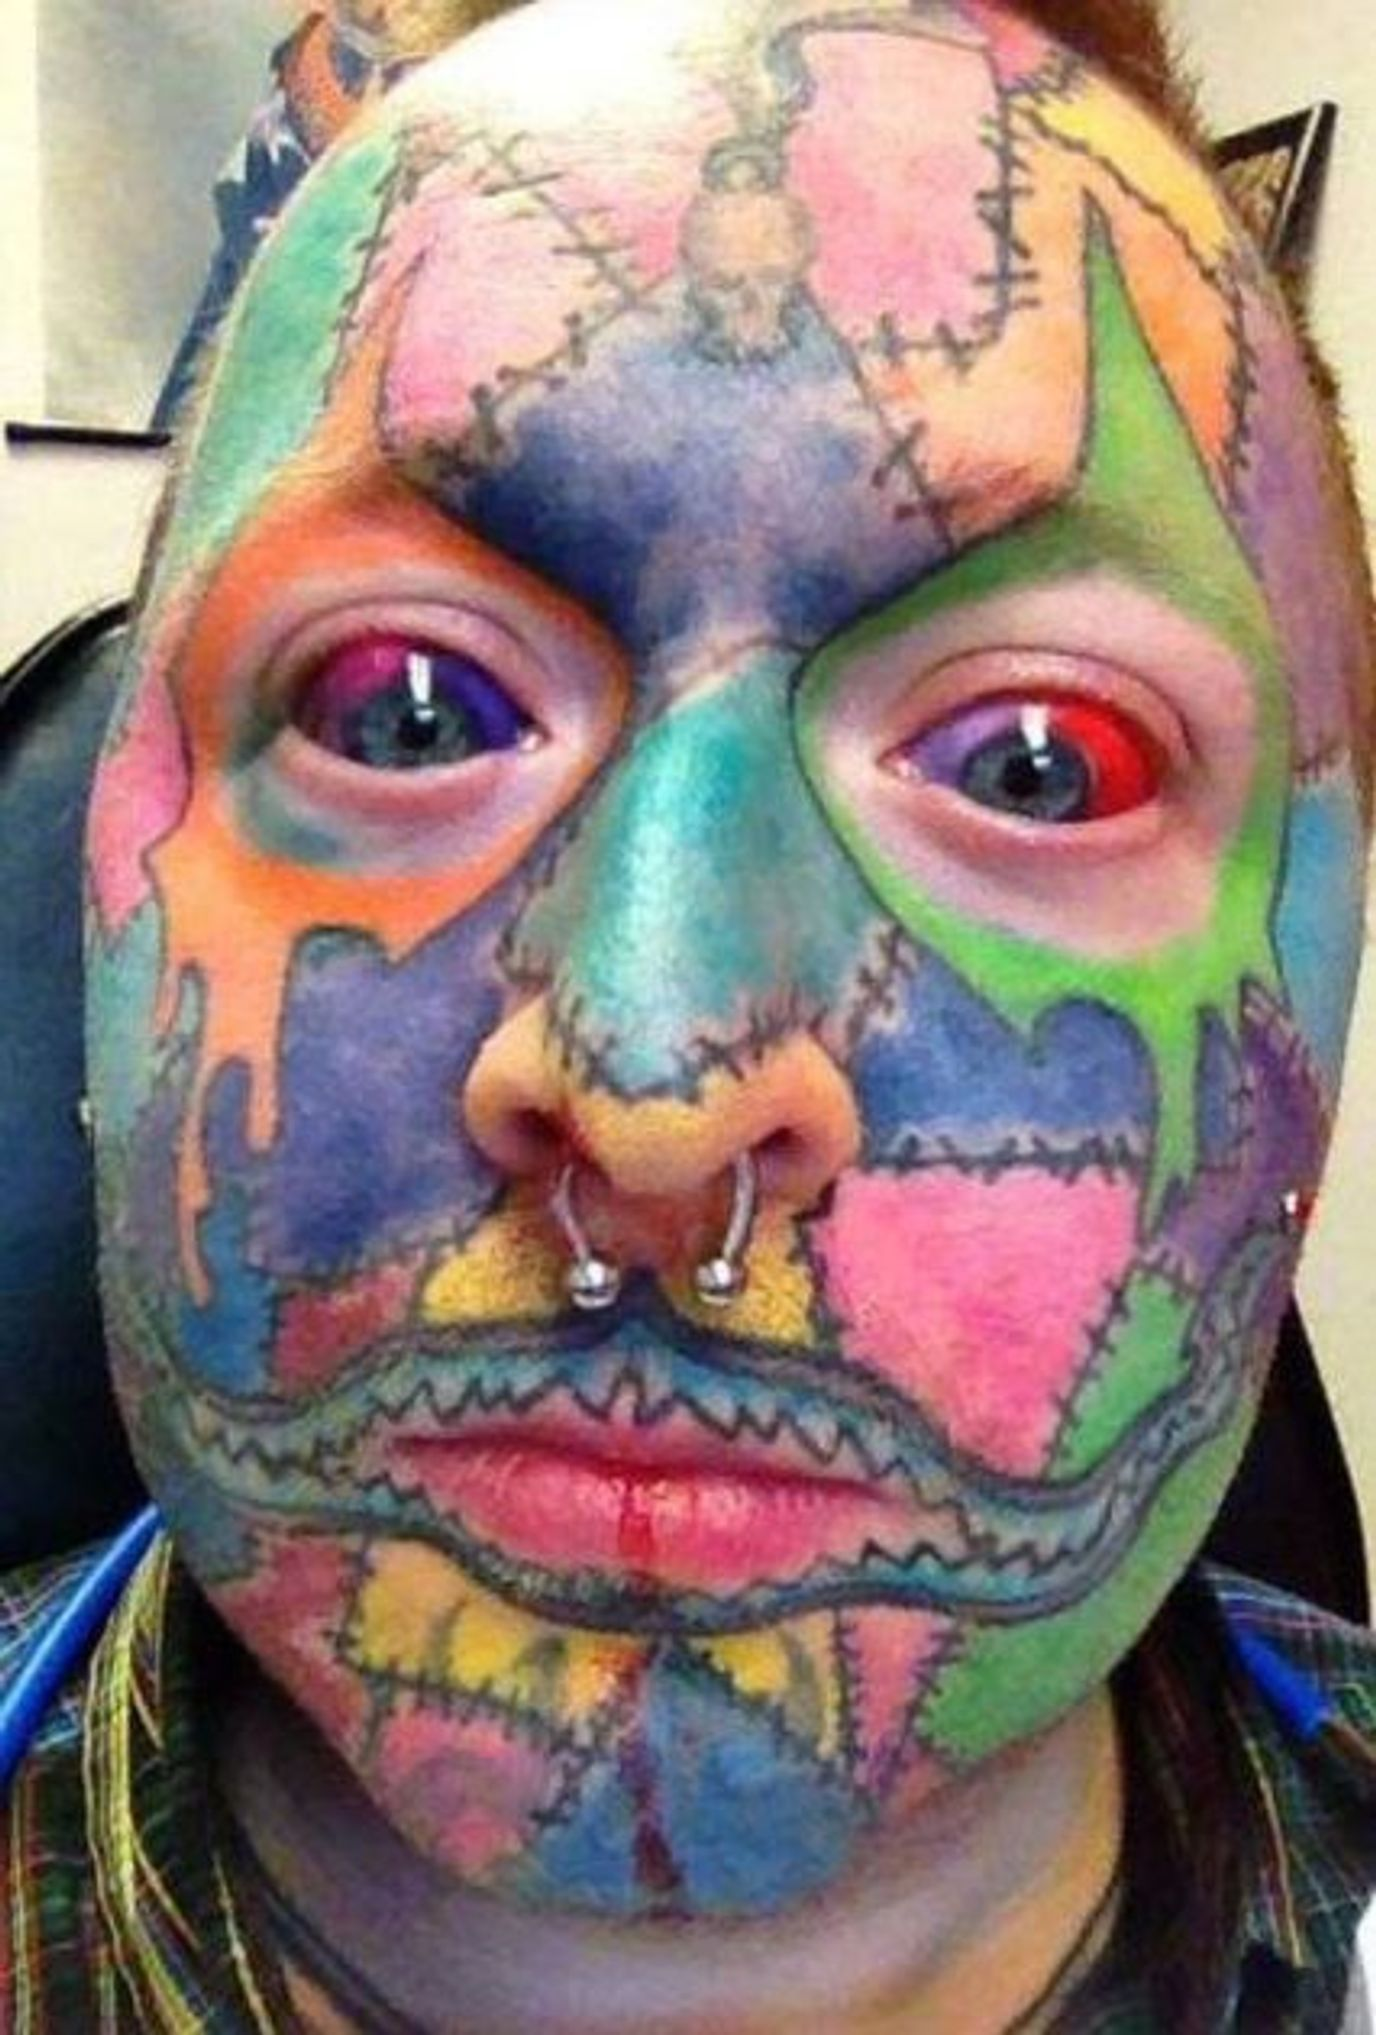 These Are the Most Regrettable Face Tattoos of All Time